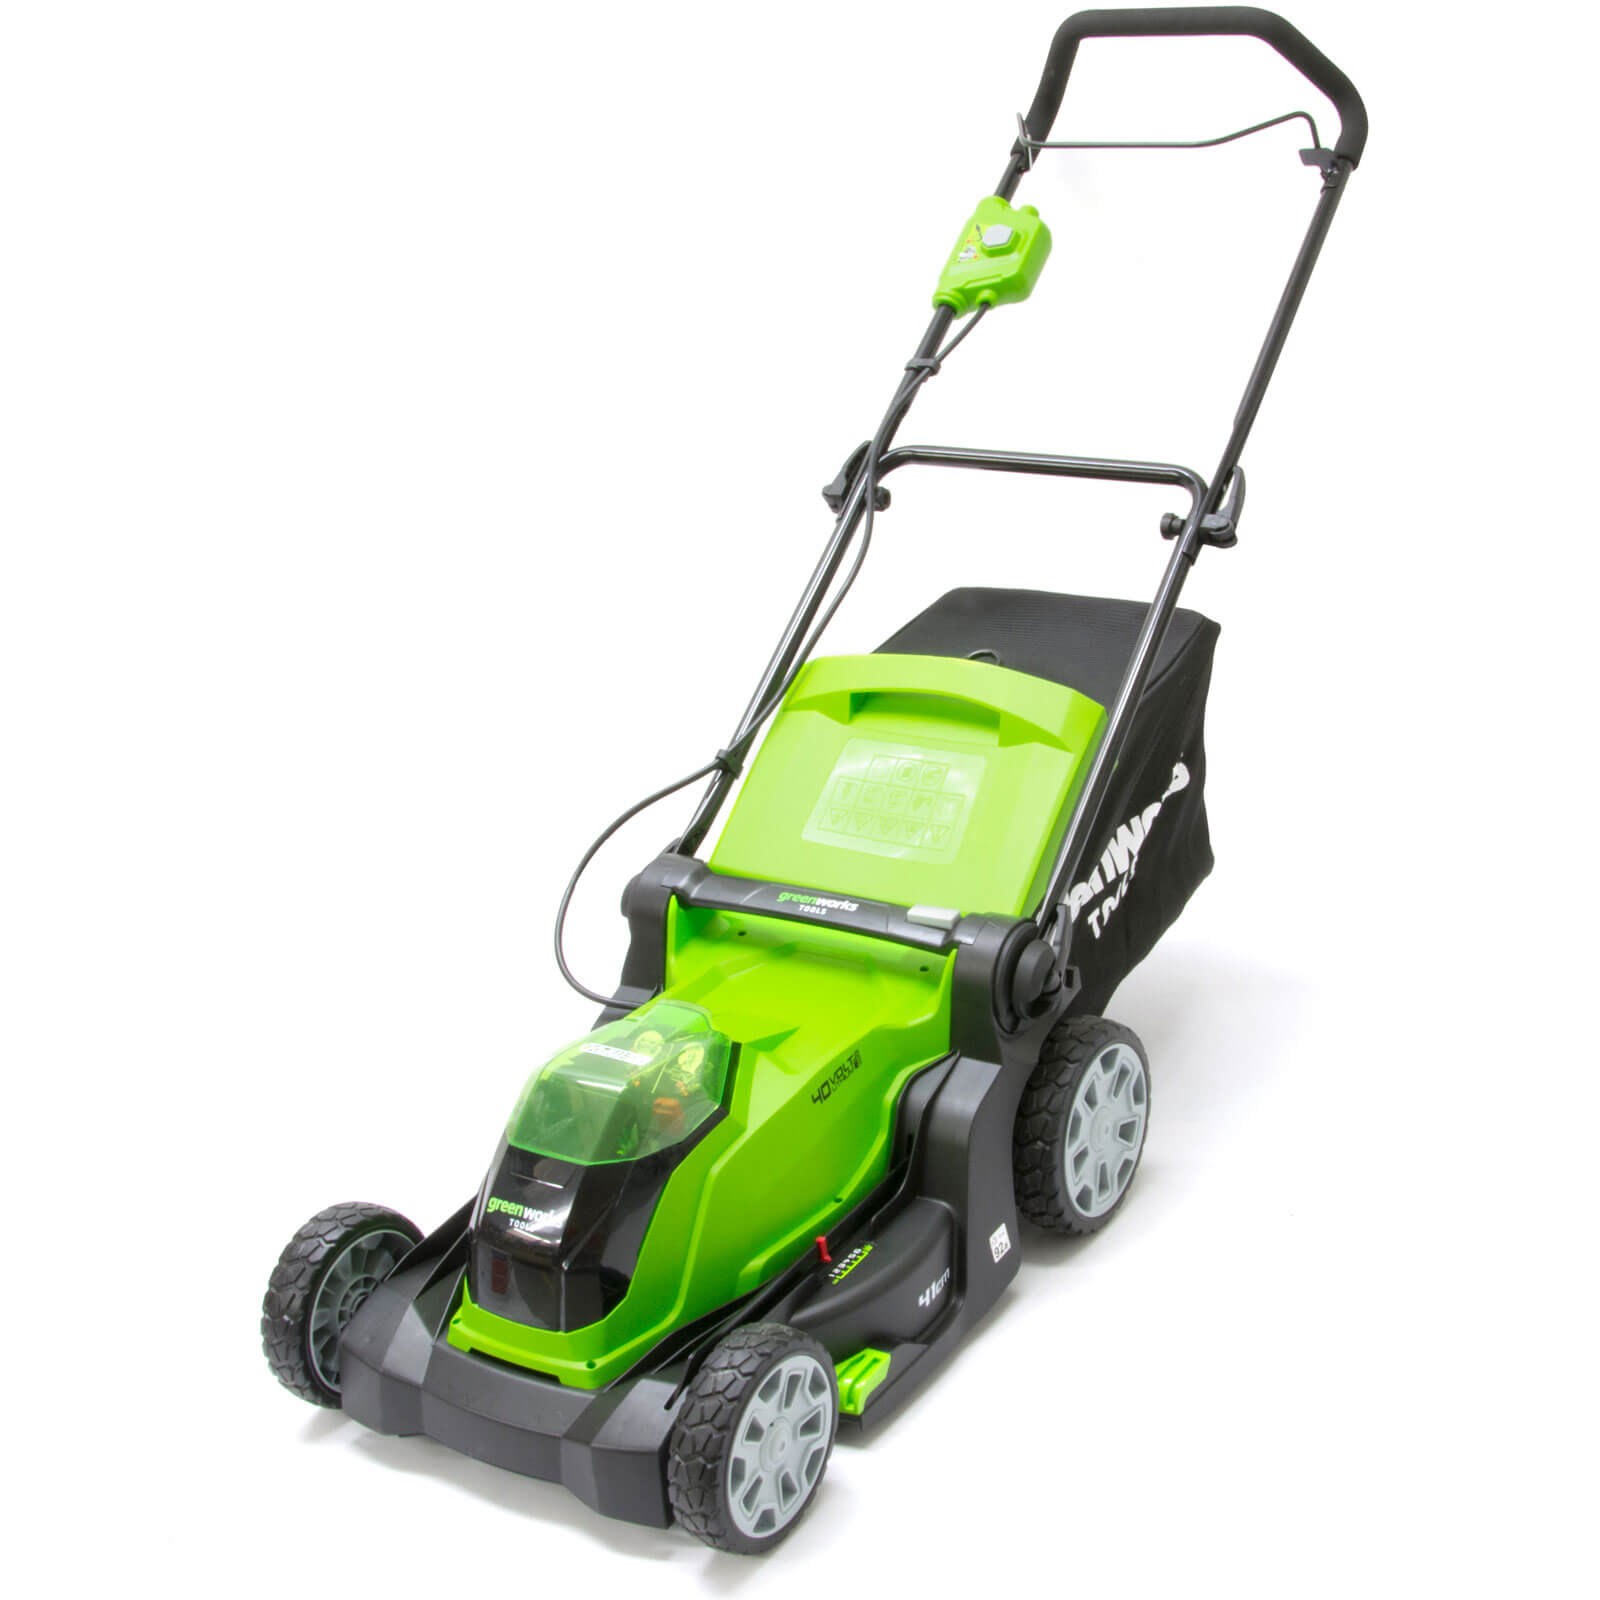 Image of Greenworks G40LM41 40v Cordless Rotary Lawnmower 400mm 2 x 2ah Li-ion Charger